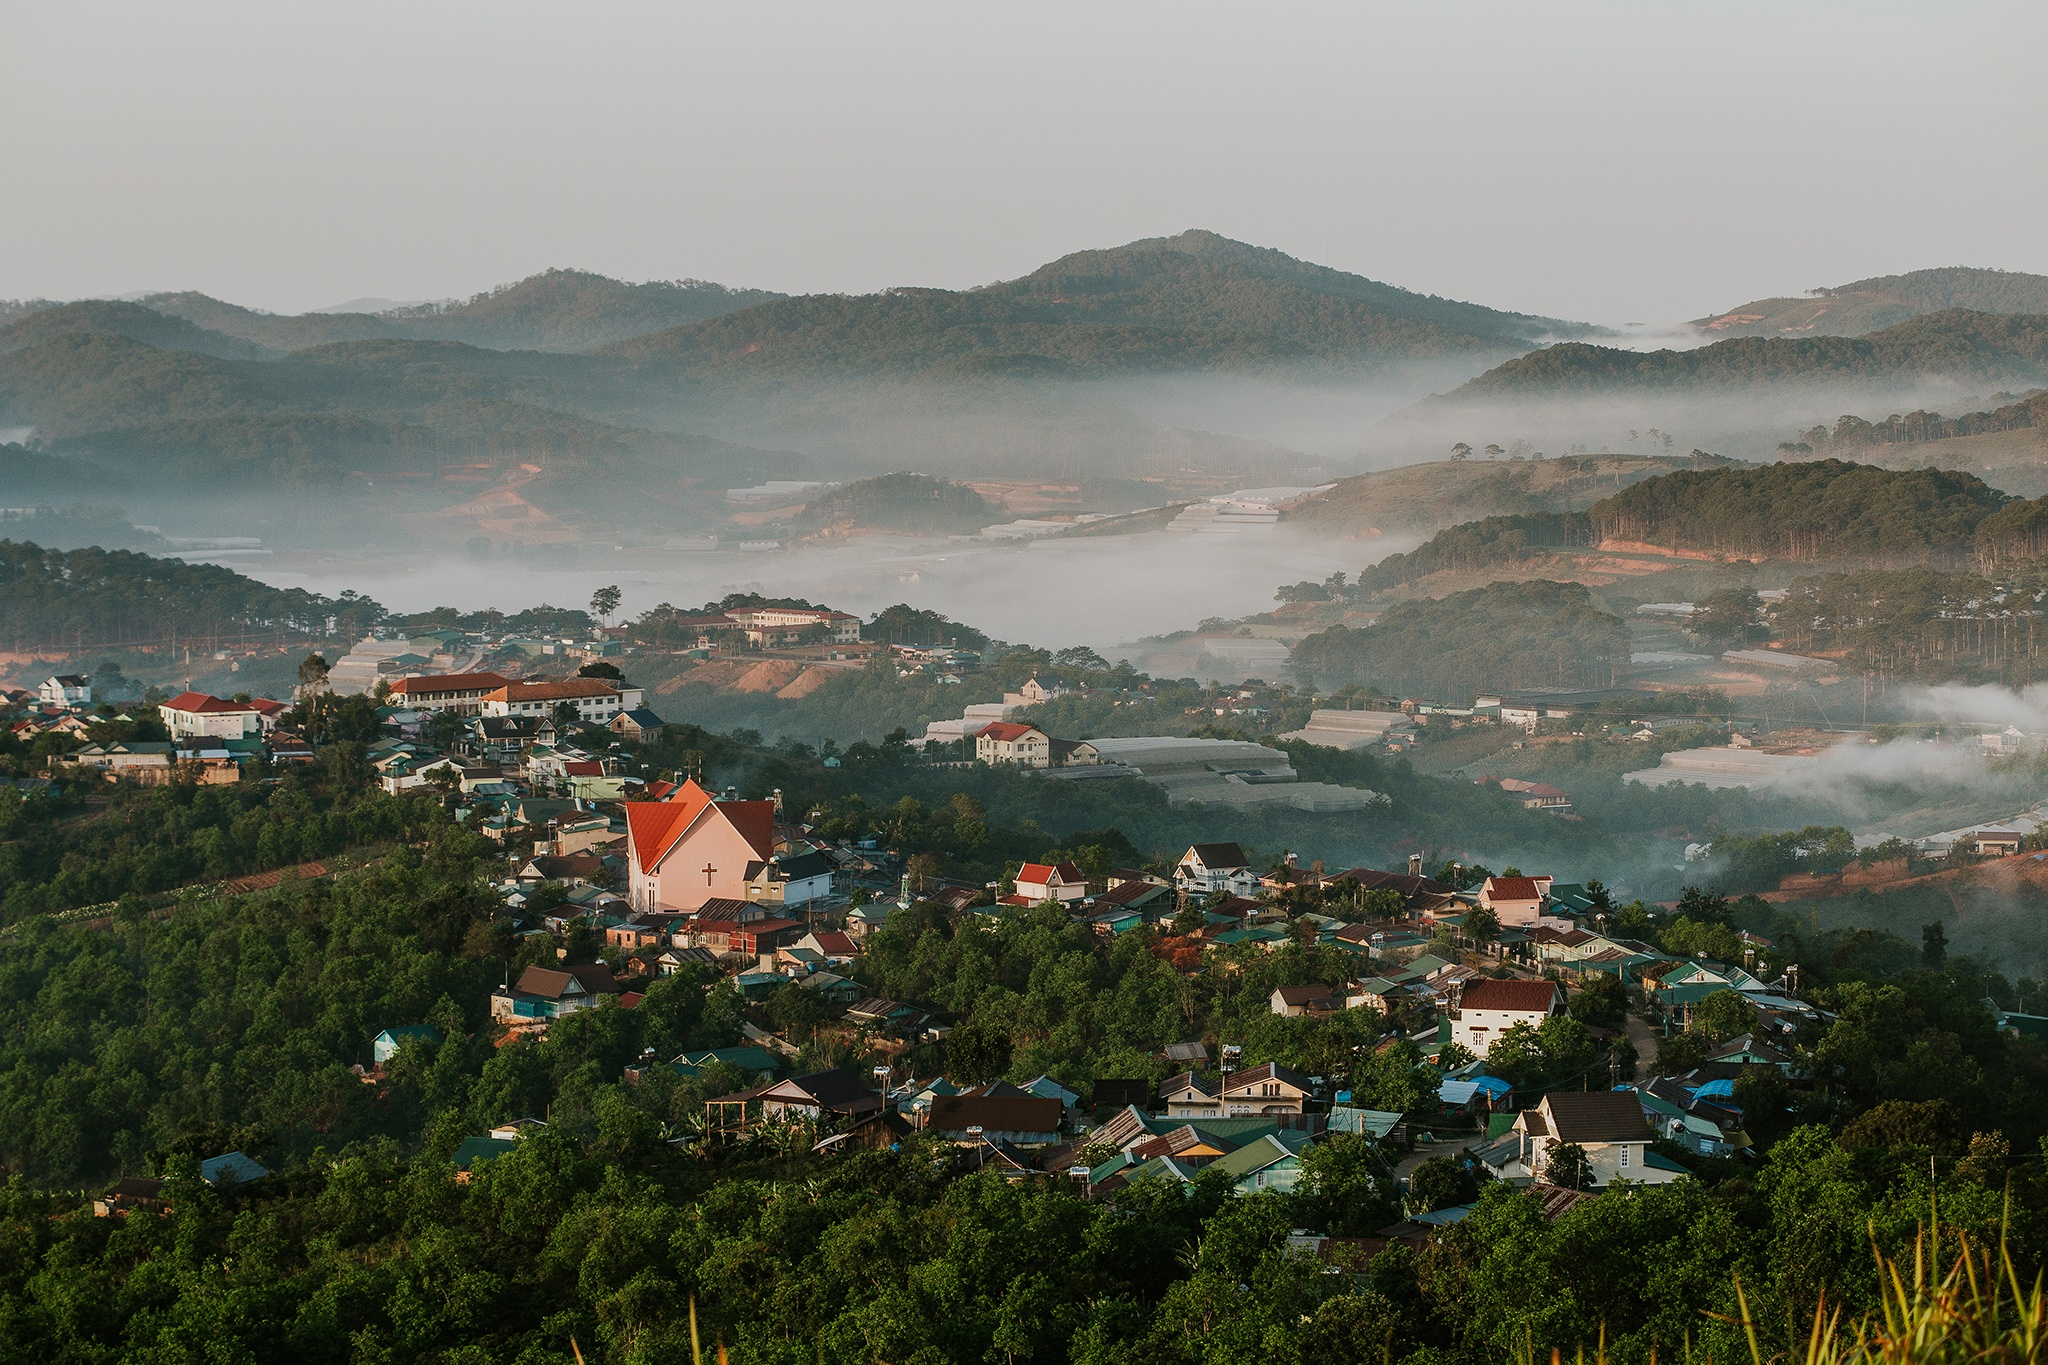 Nam moi ghe Da Lat, ngam thanh pho chim trong suong hinh anh 15